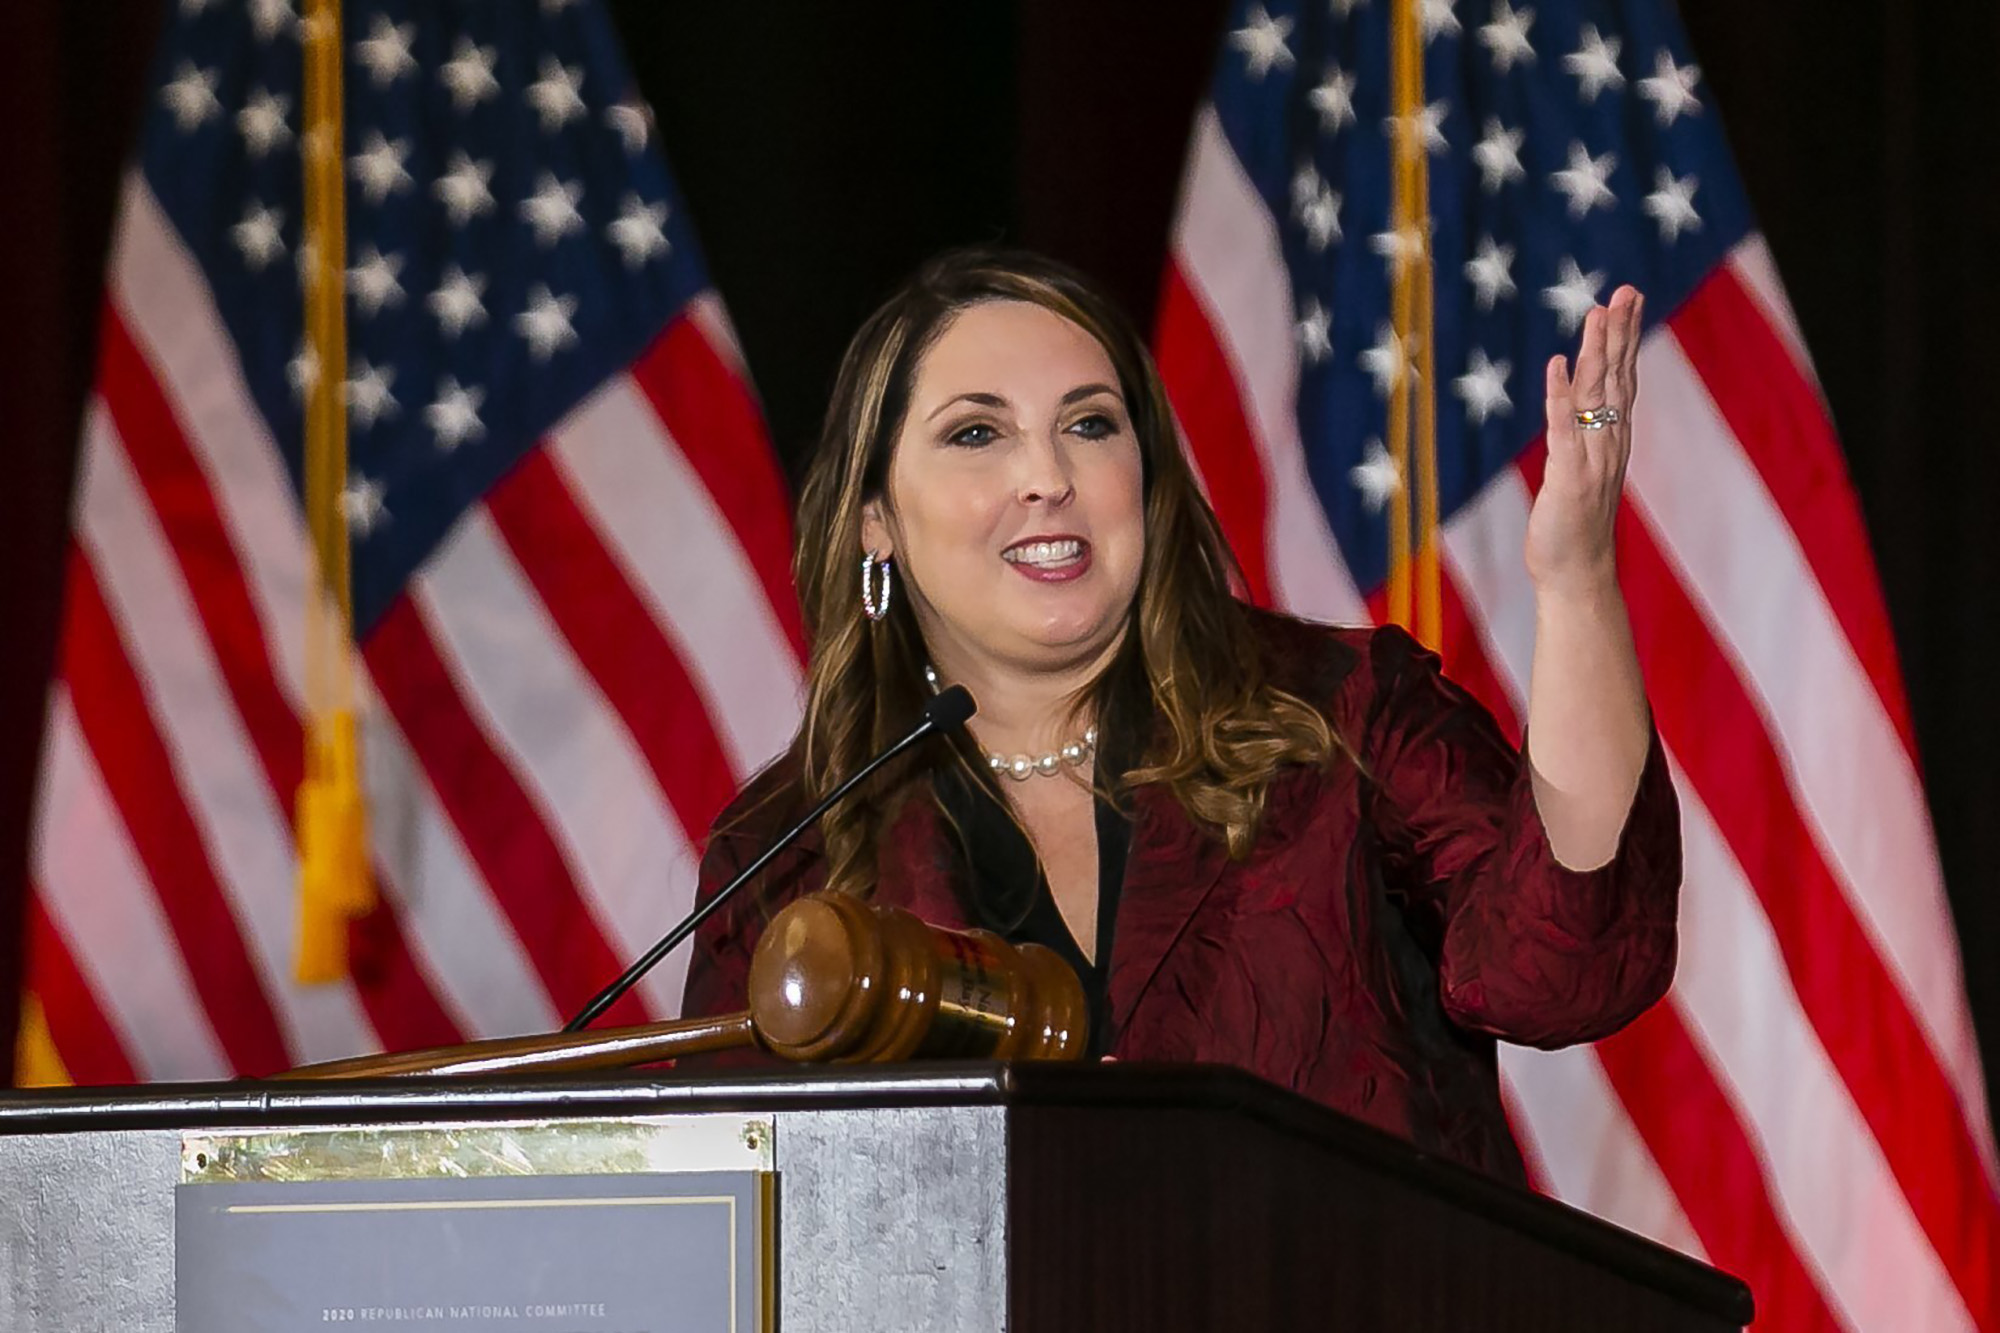 Ronna Romney McDaniel, chair of the Republican National Committee, speaks during the RNC winter meeting at the Trump National Doral Resort in Miami, on Friday, January 24.